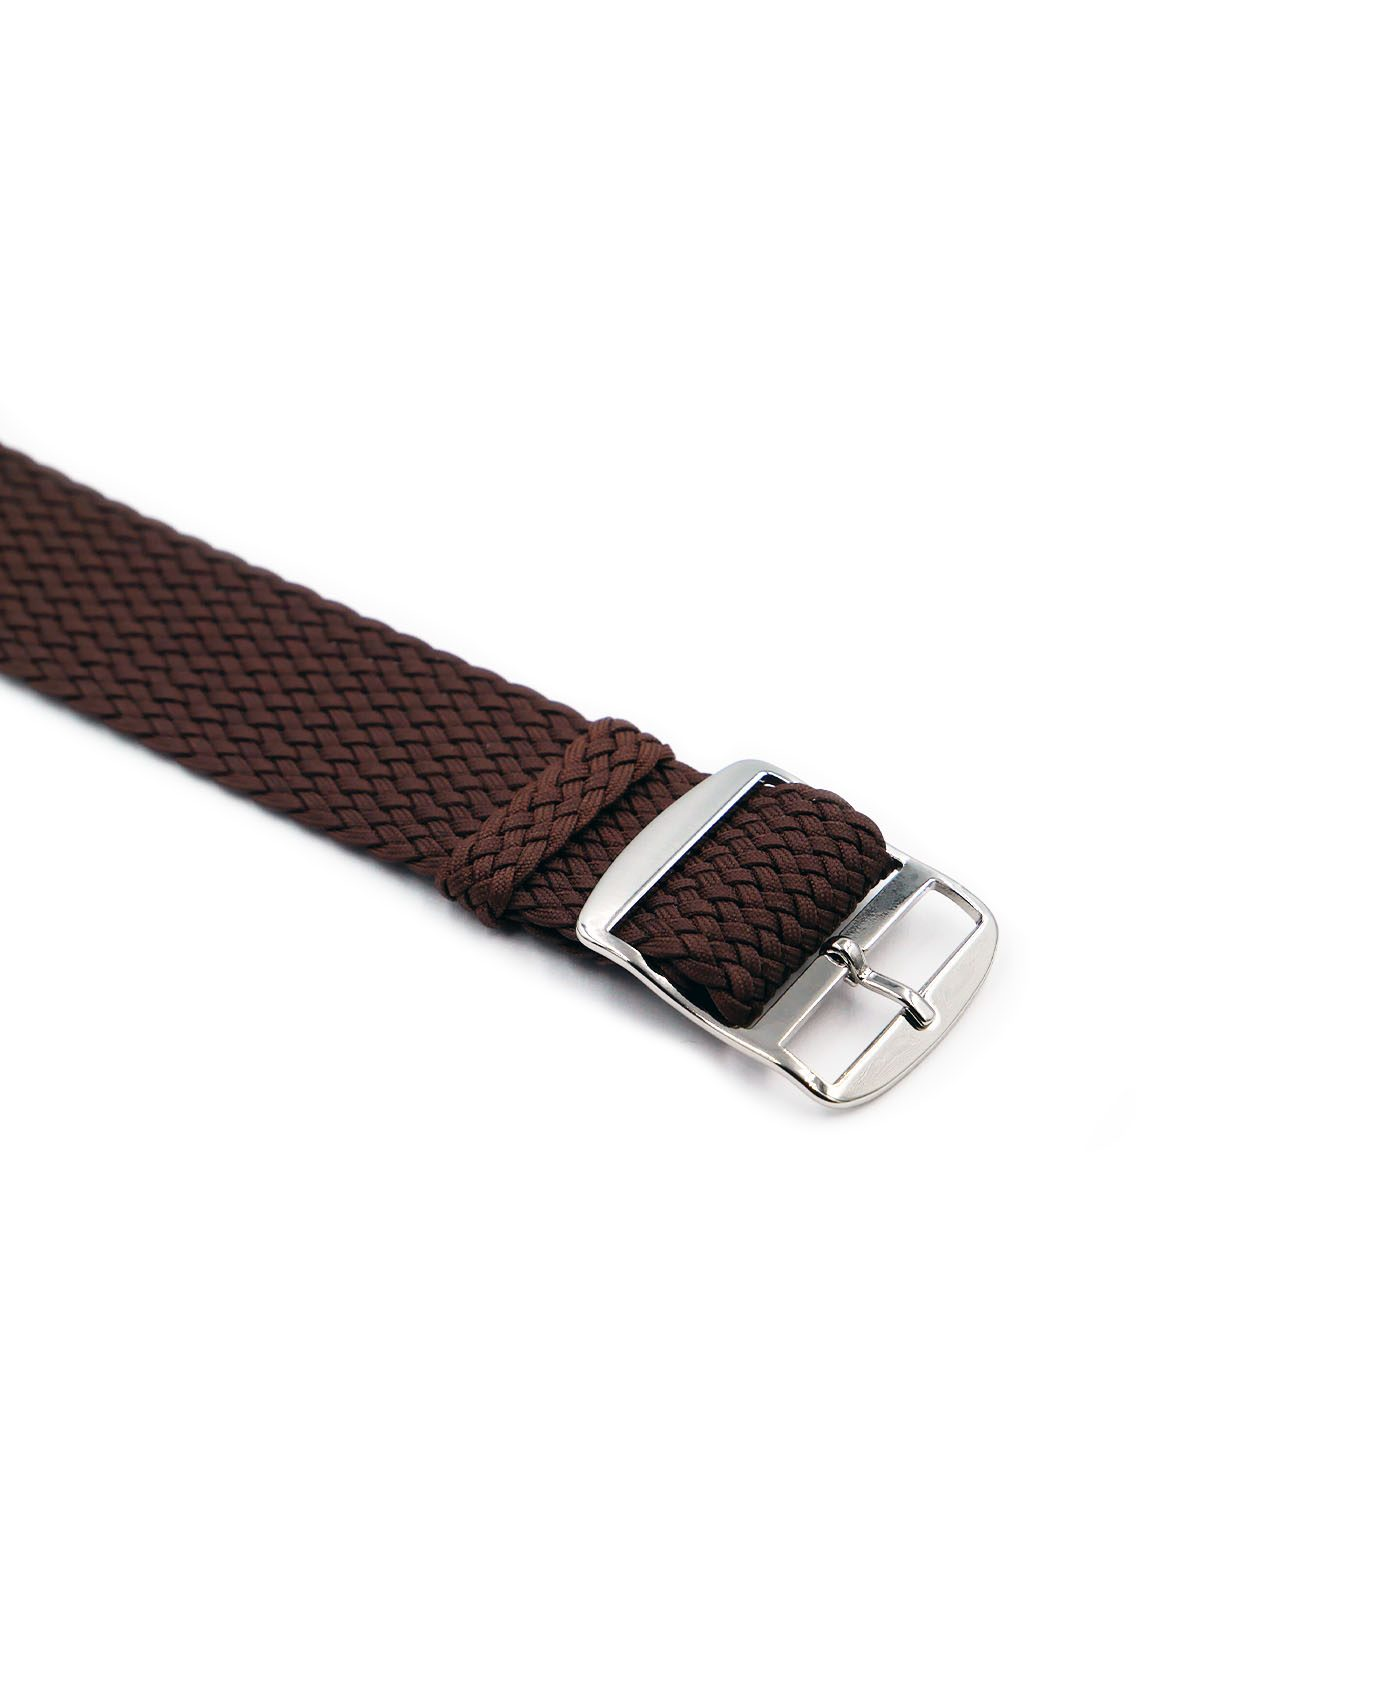 Watchbandit Premium Perlon Watch strap brown buckle